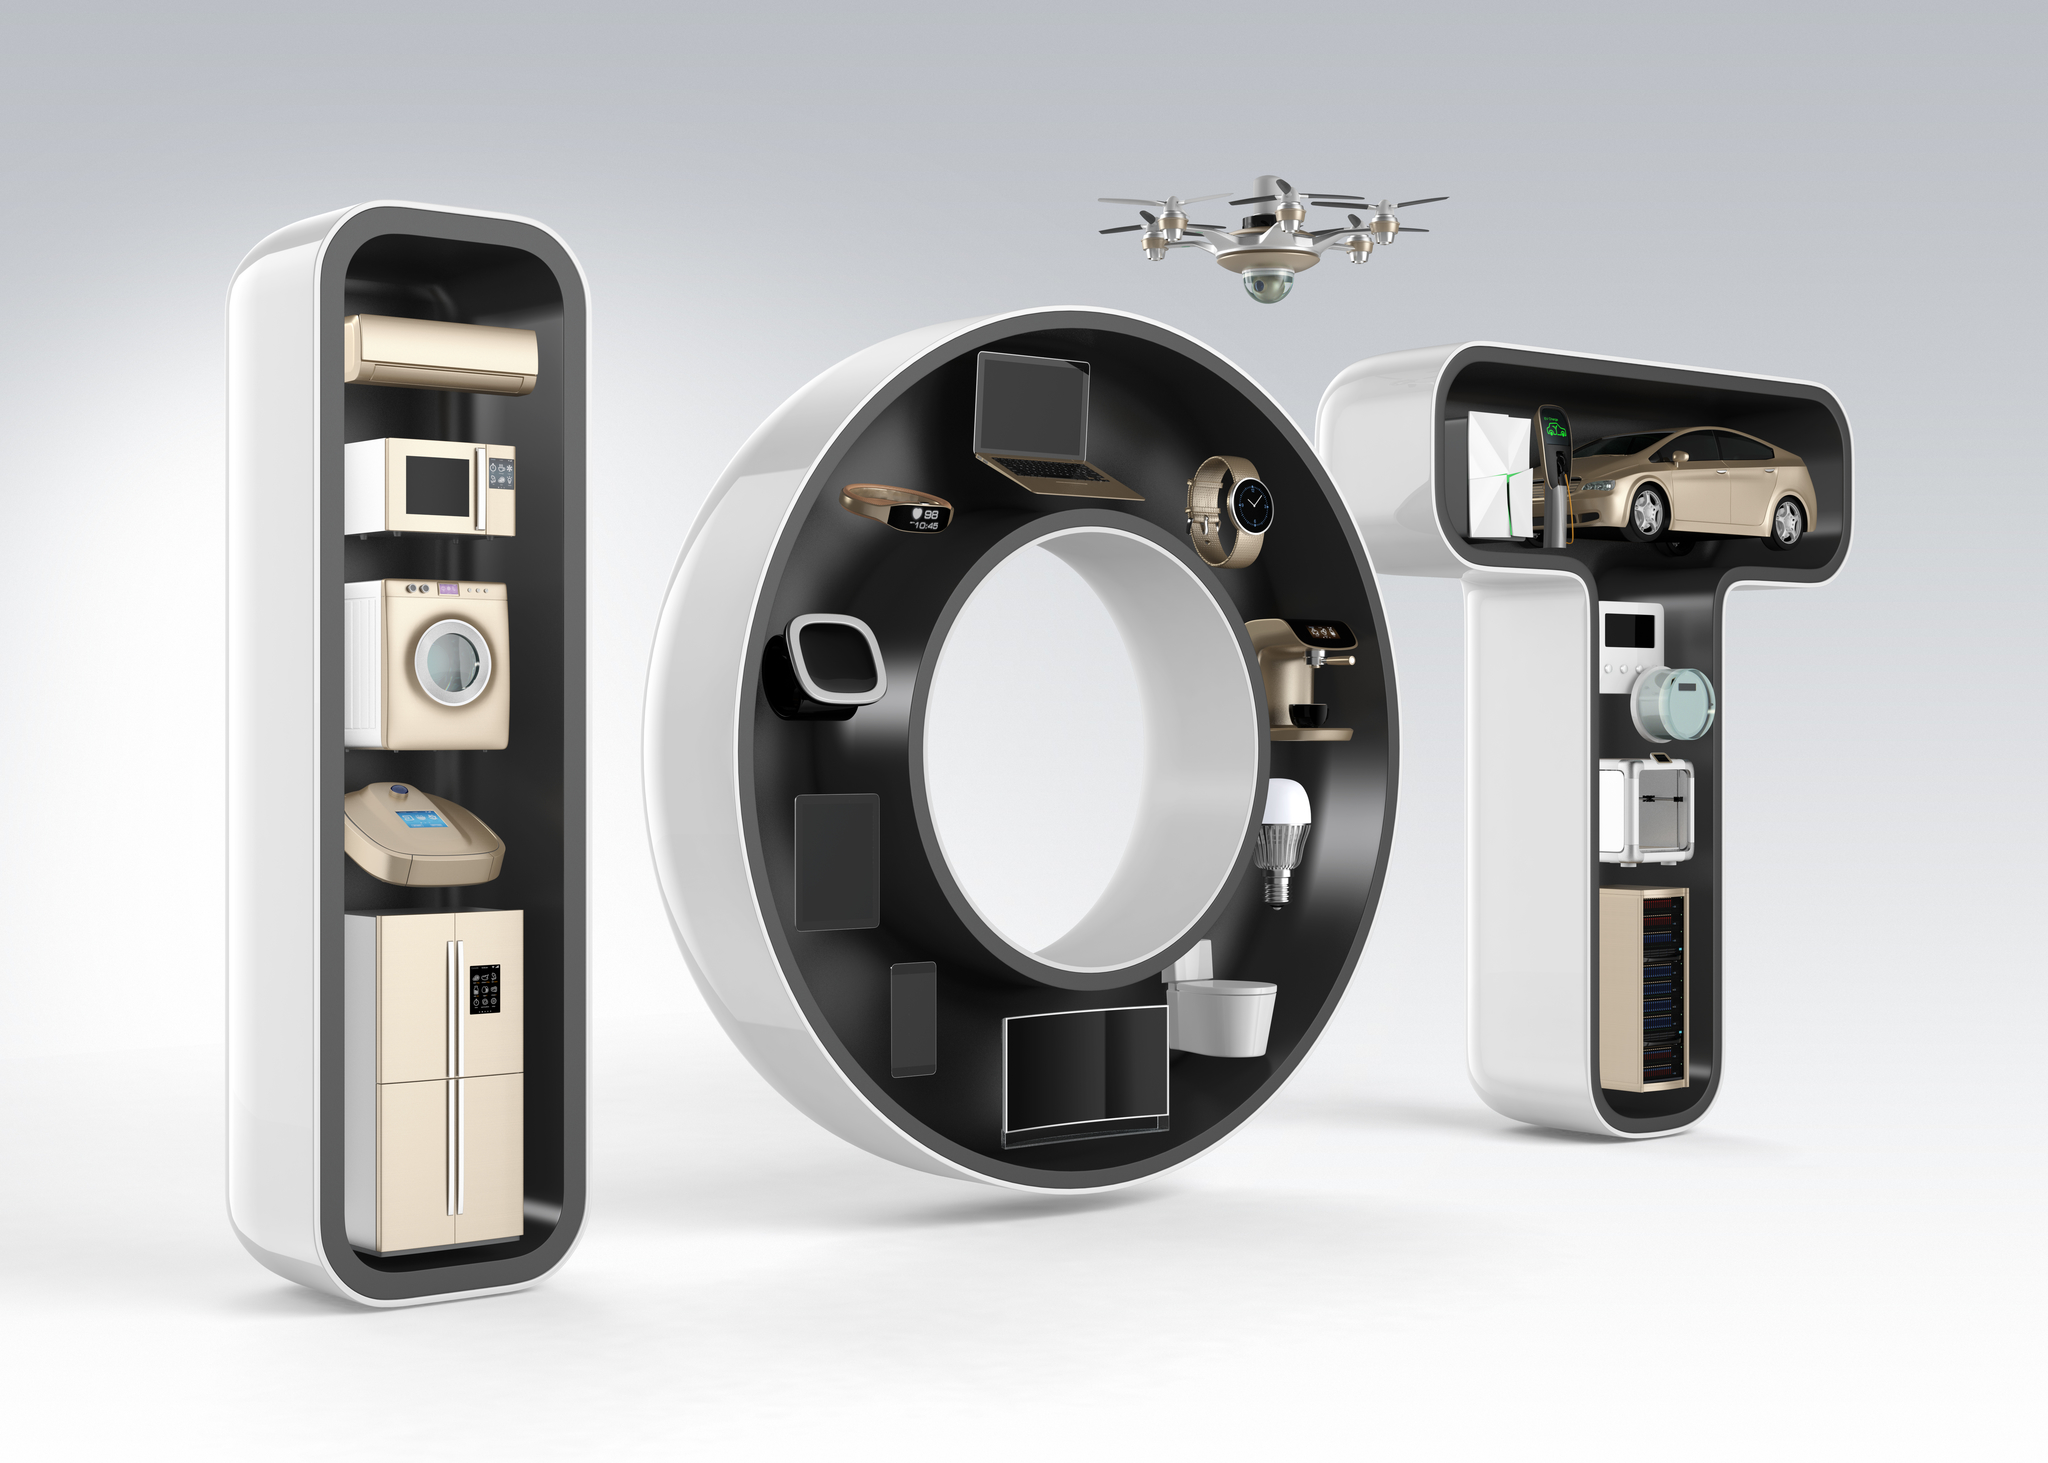 IOT, Internet of Things, Consumer Product Marketing